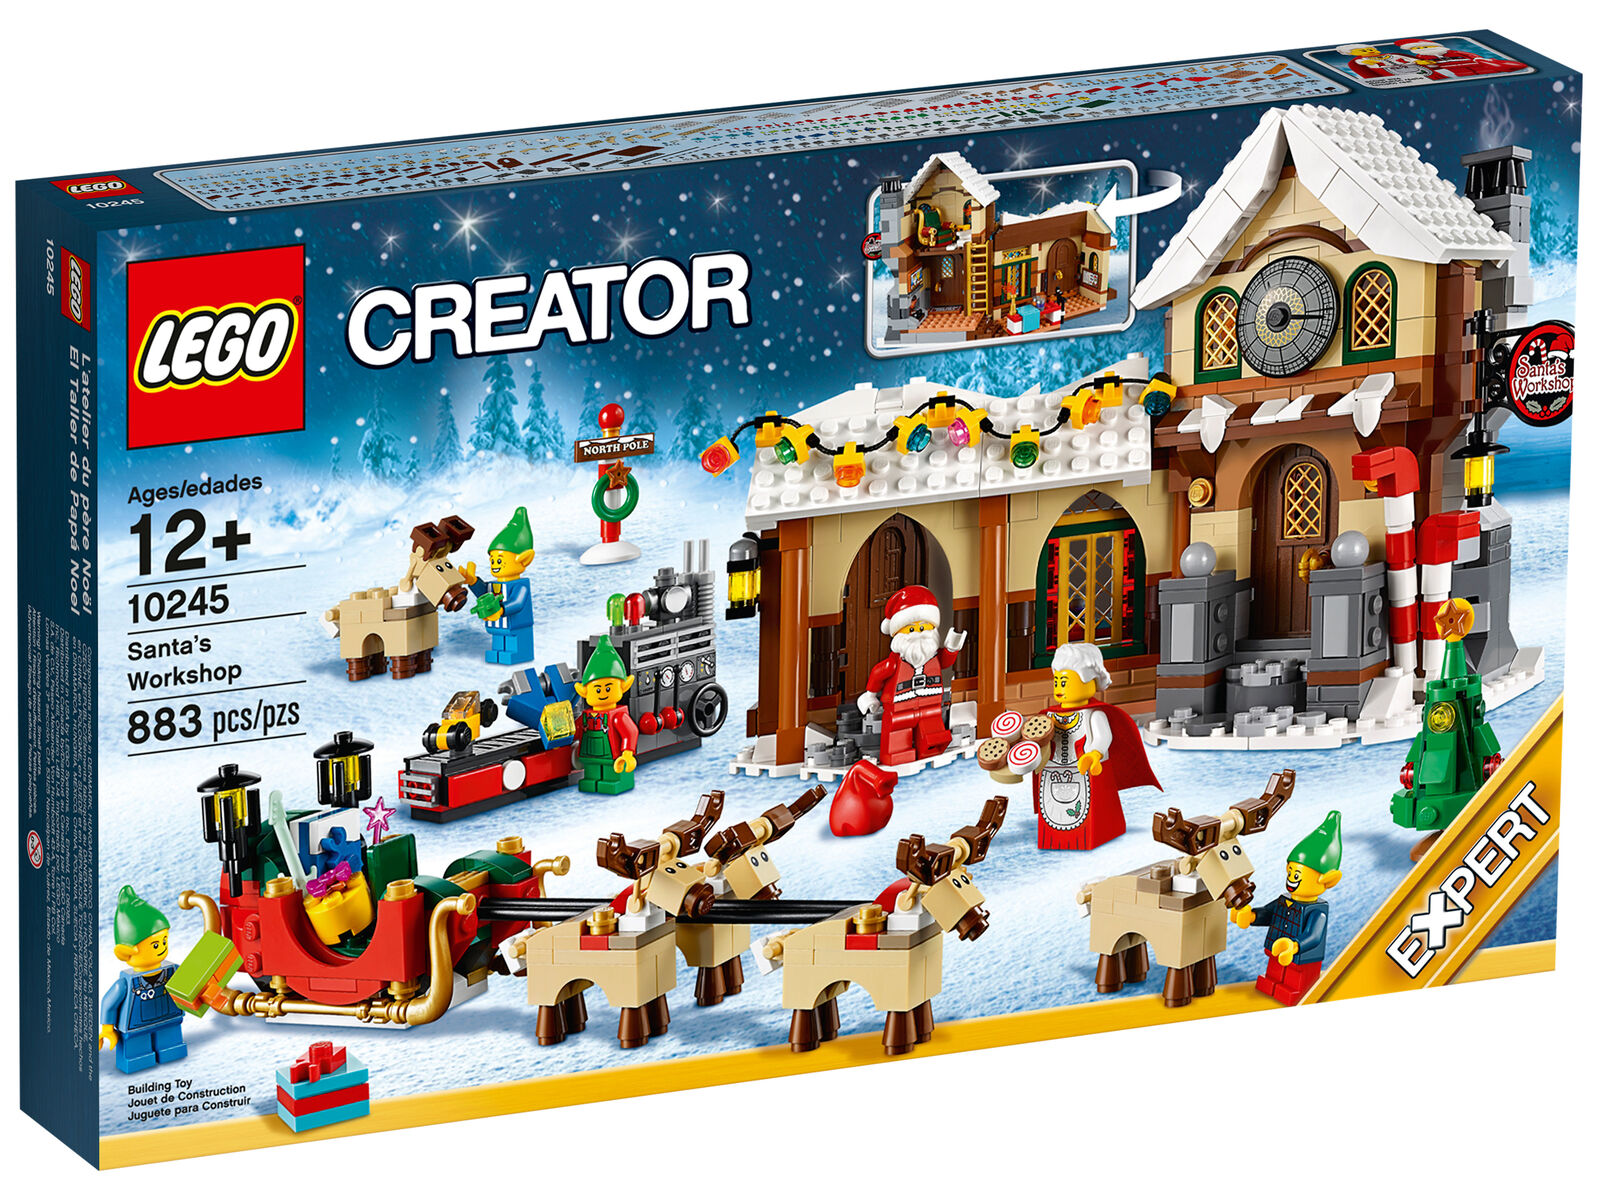 LEGO Creator Santa's Workshop (10245) - FACTORY SEALED, Direct from LEGO